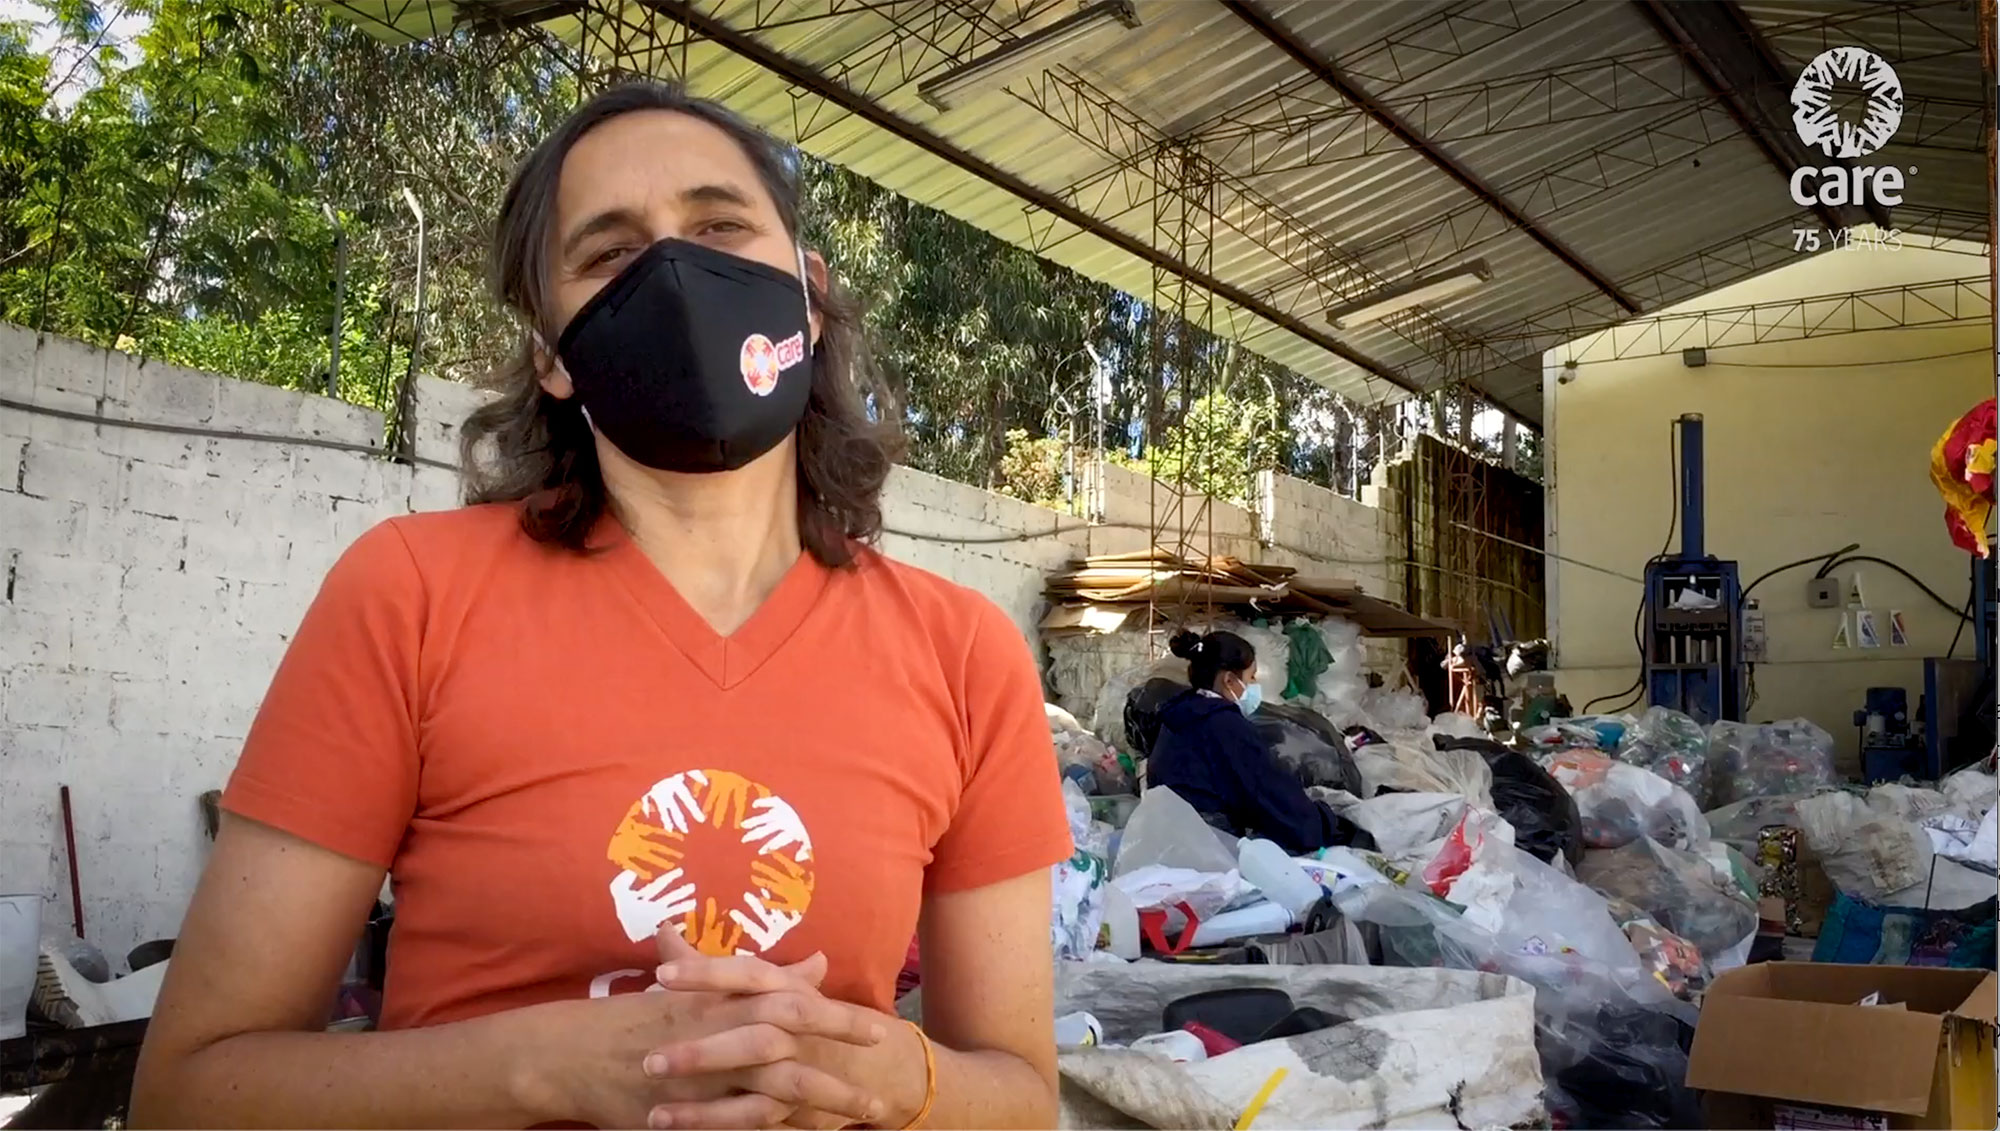 a woman in a face mask stands in front of a recycling processing plant while people in masks work behind her.